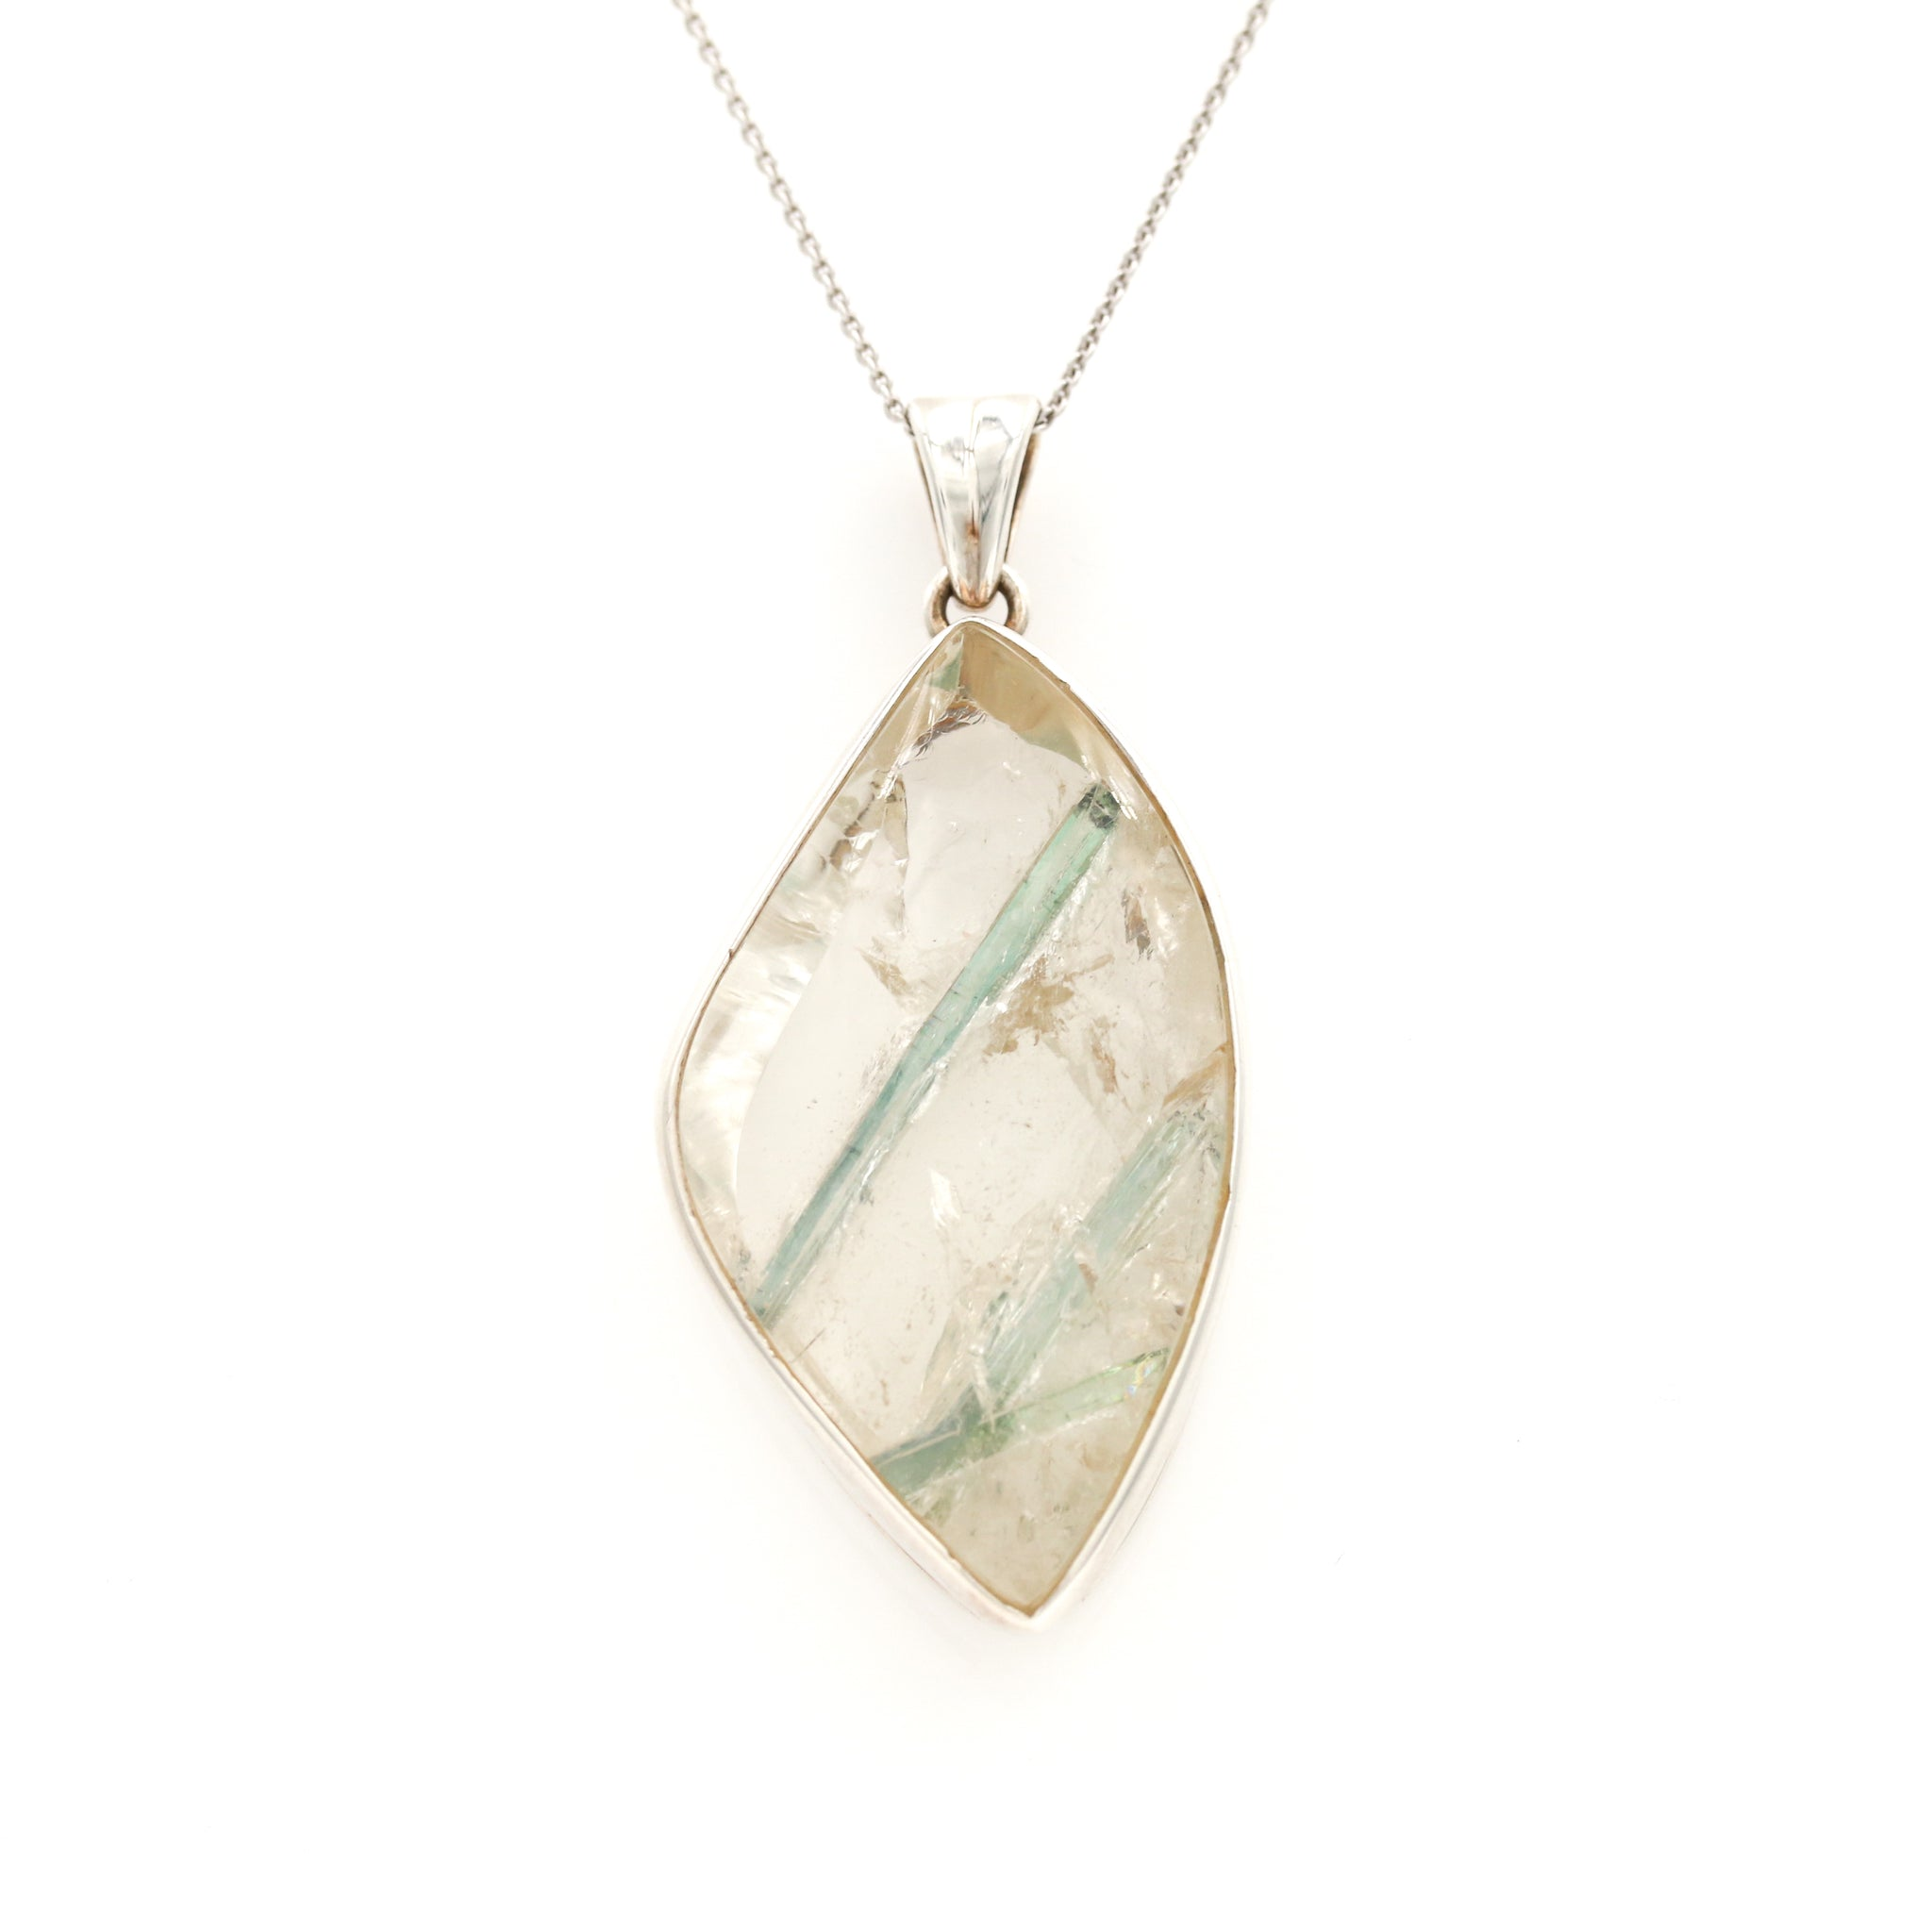 Quartz in Sterling Silver Necklace - Sindur